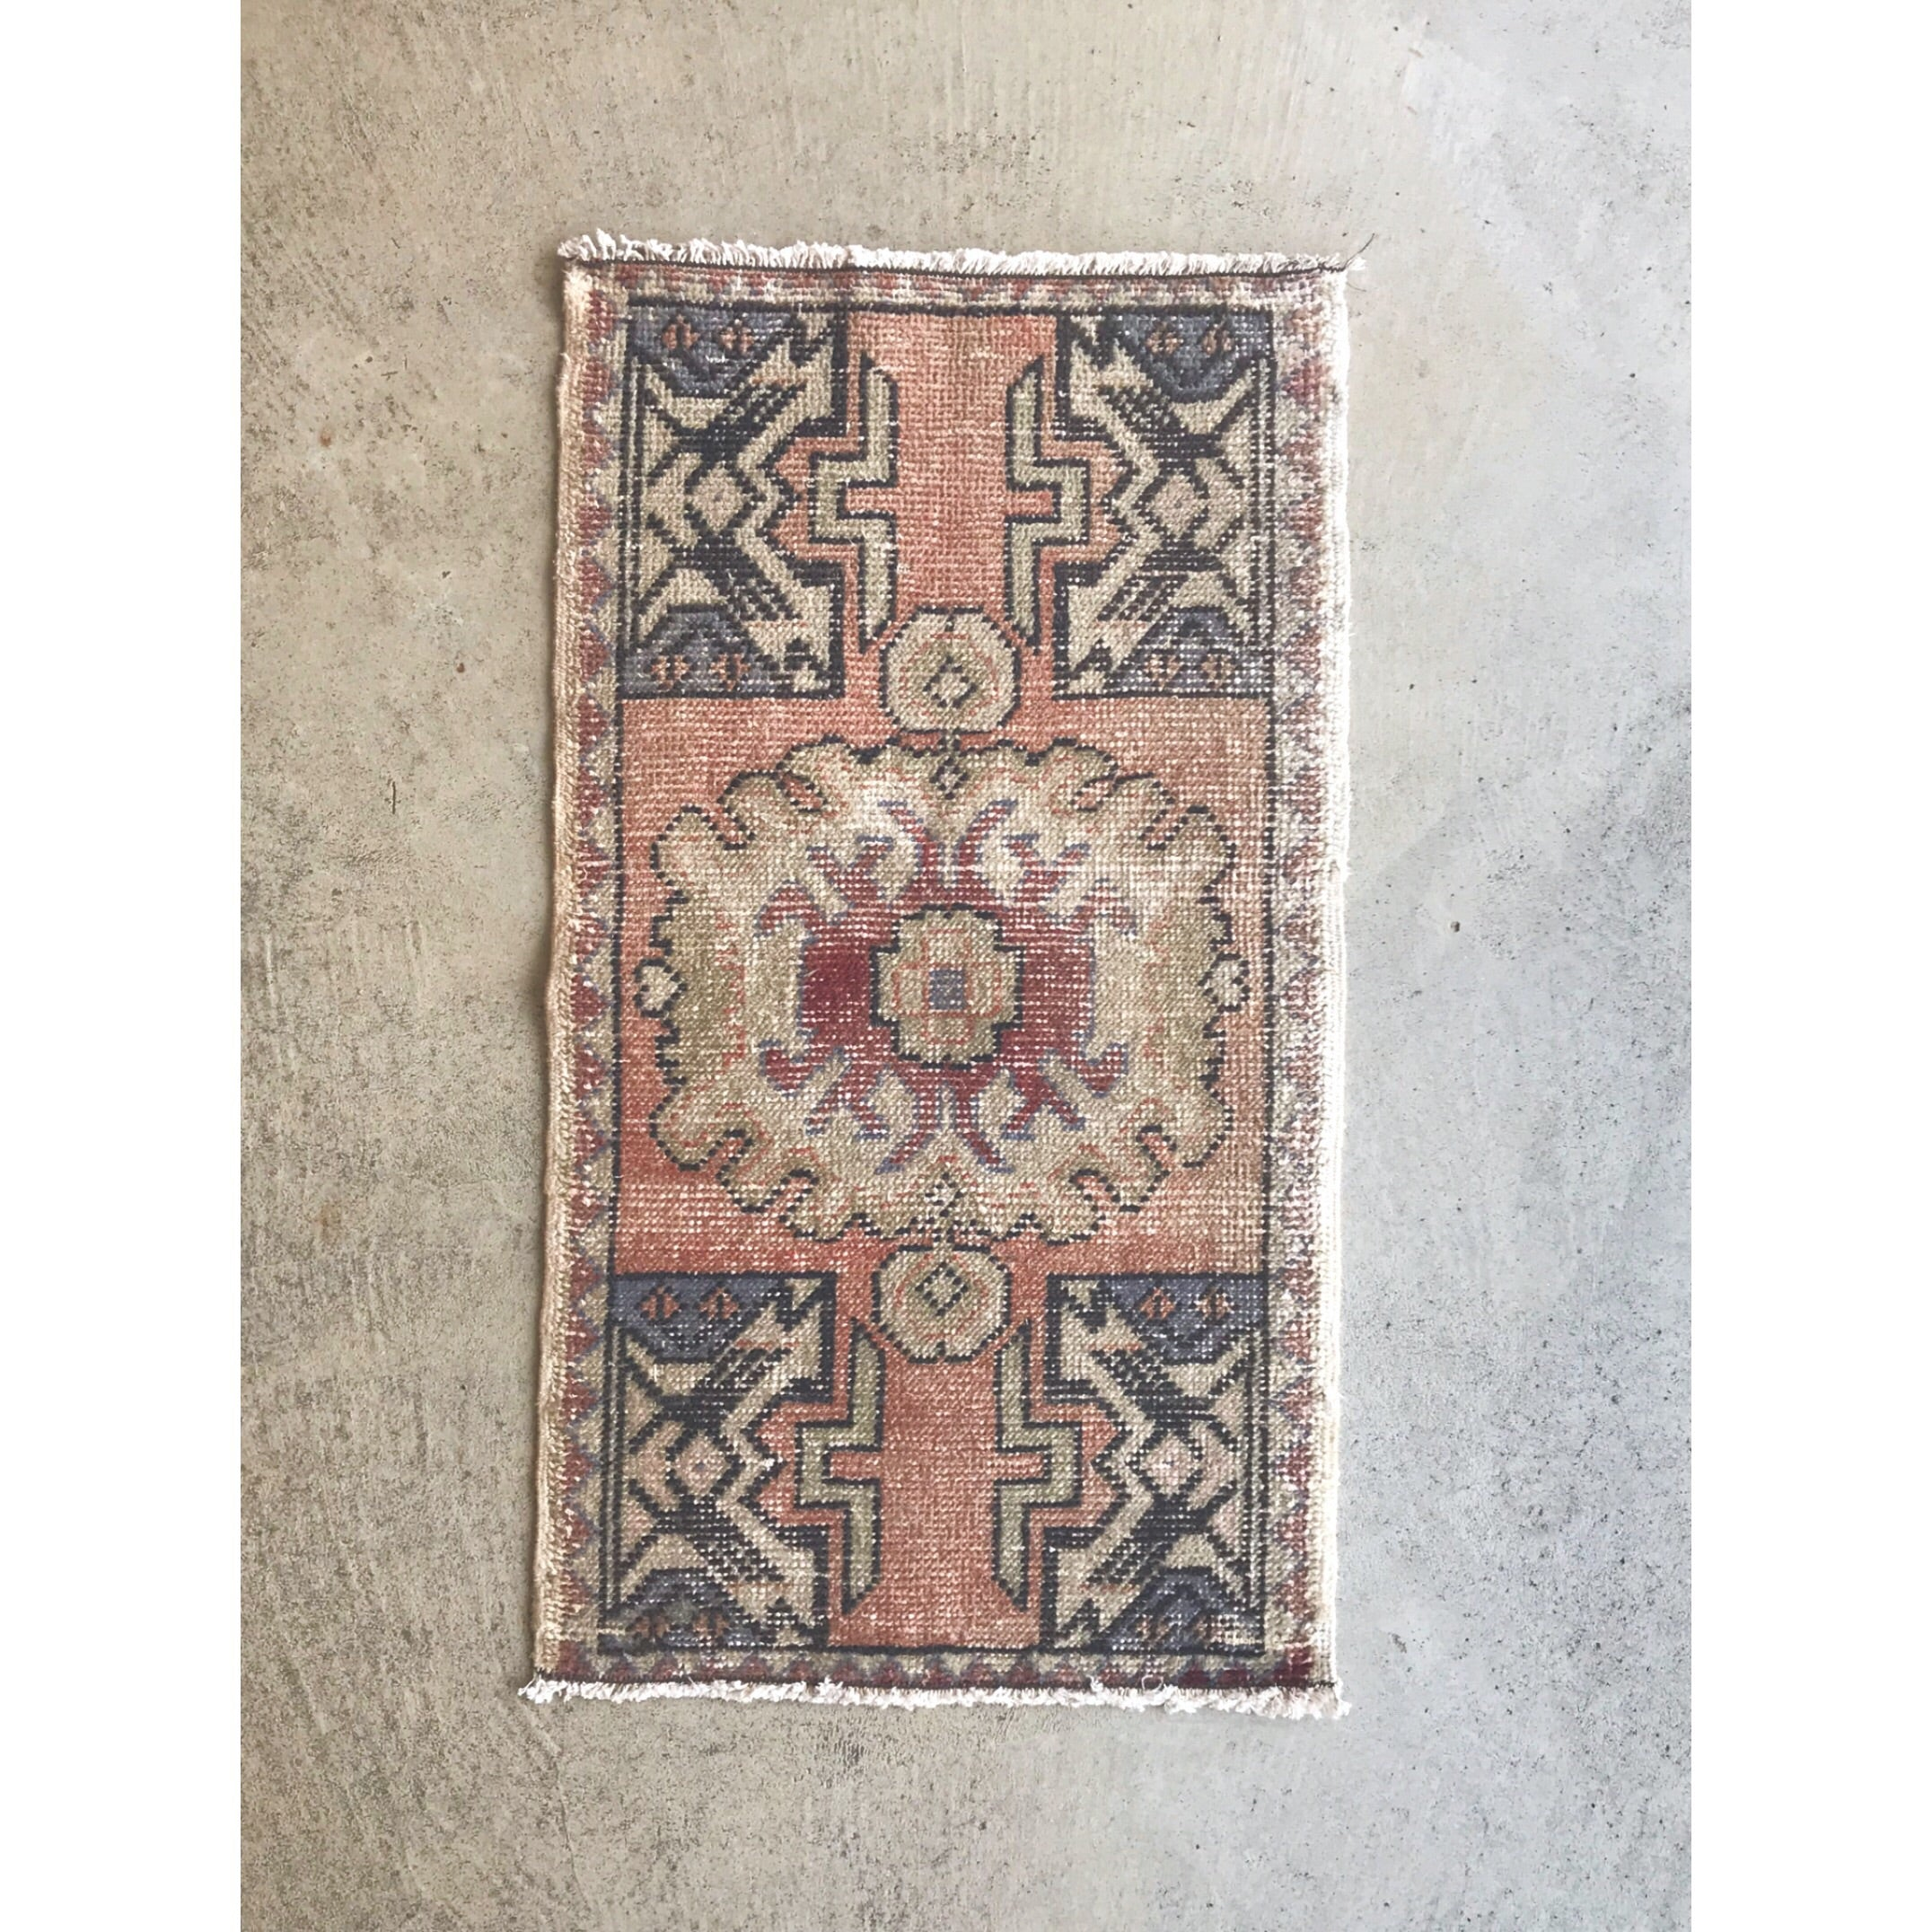 This small handwoven vintage Turkish rug has great warm colors. Perfecr for entryways, bathrooms, kitchens and layering. 19x35""